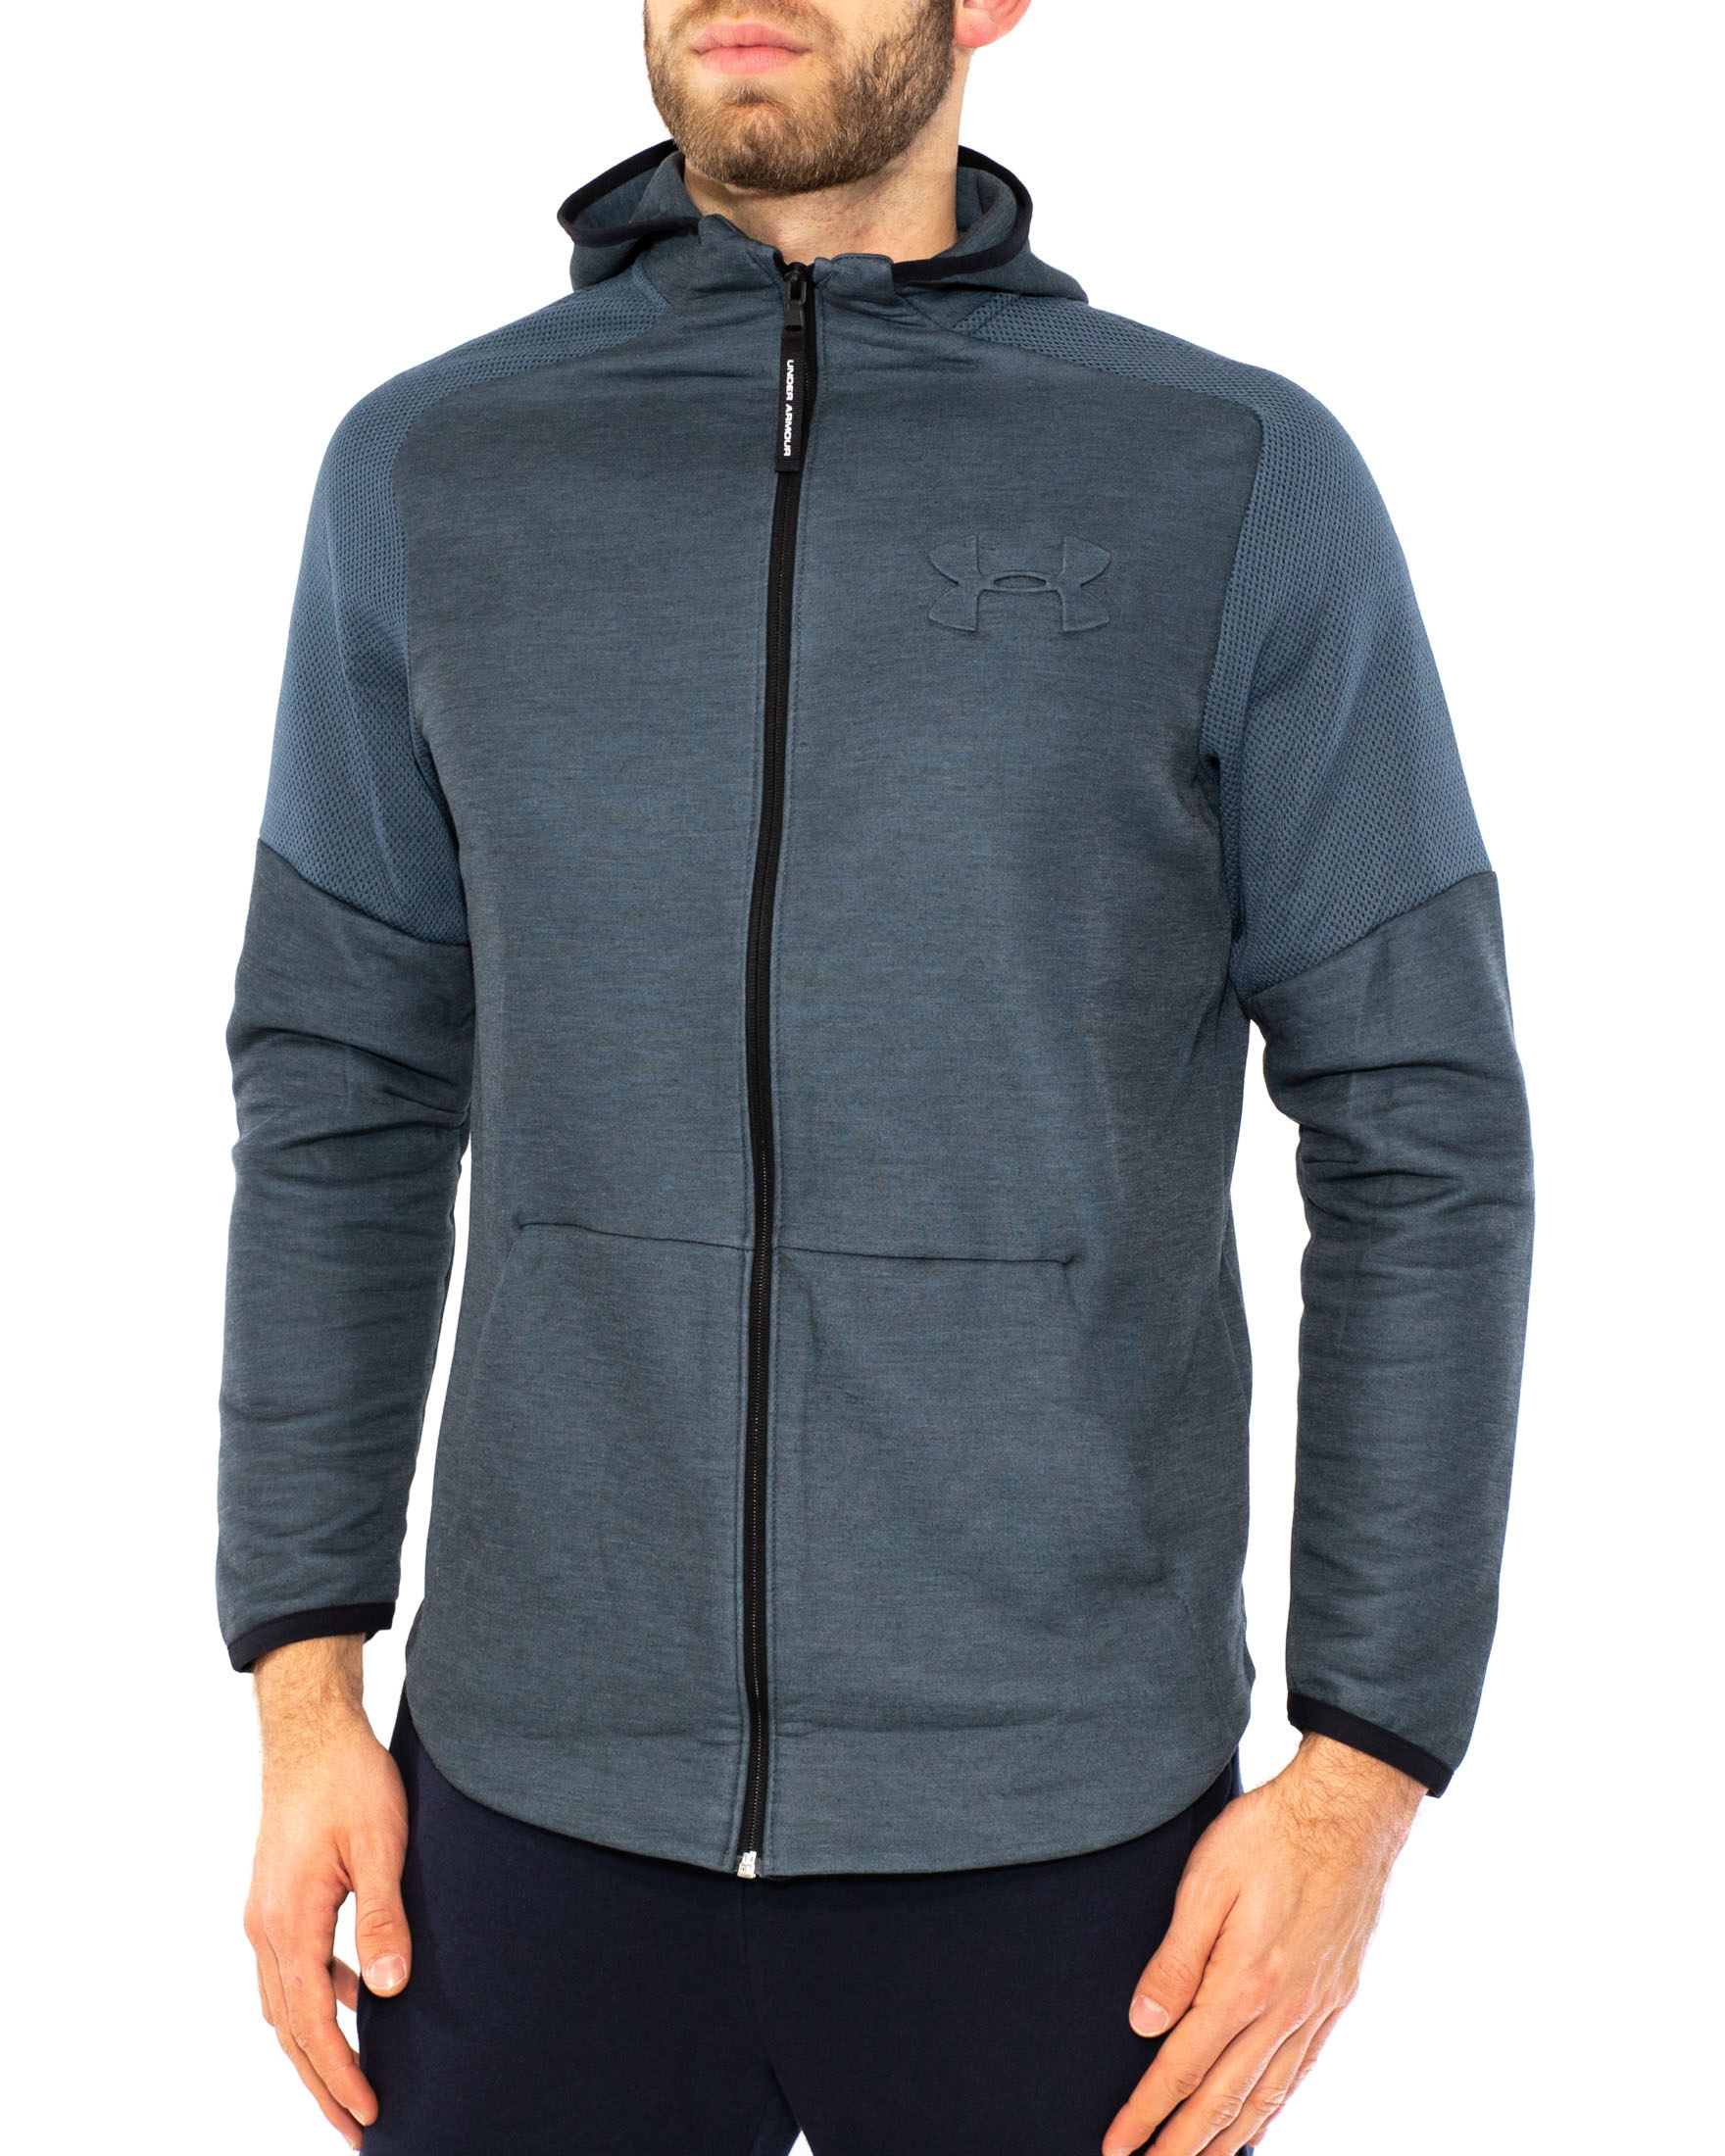 UNDER ARMOUR FELPA TECNICA CON ZIP